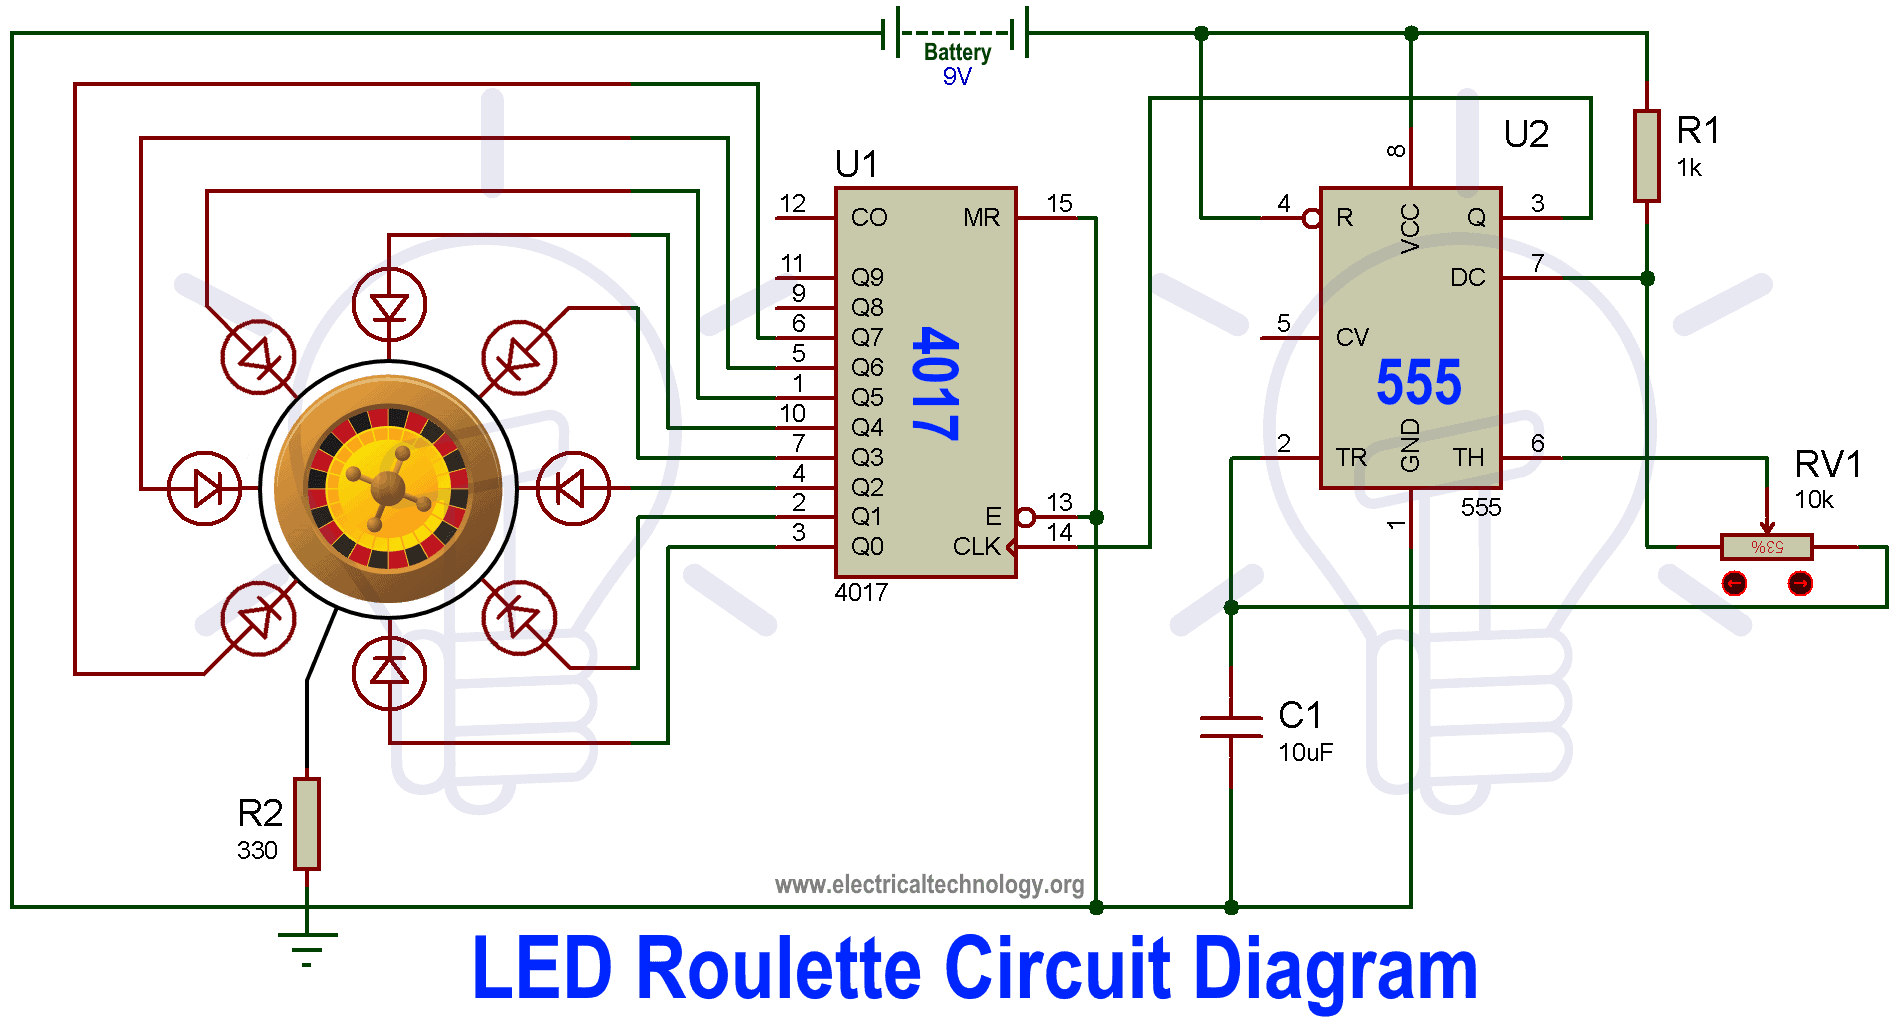 LED Roulette Circuit Diagram